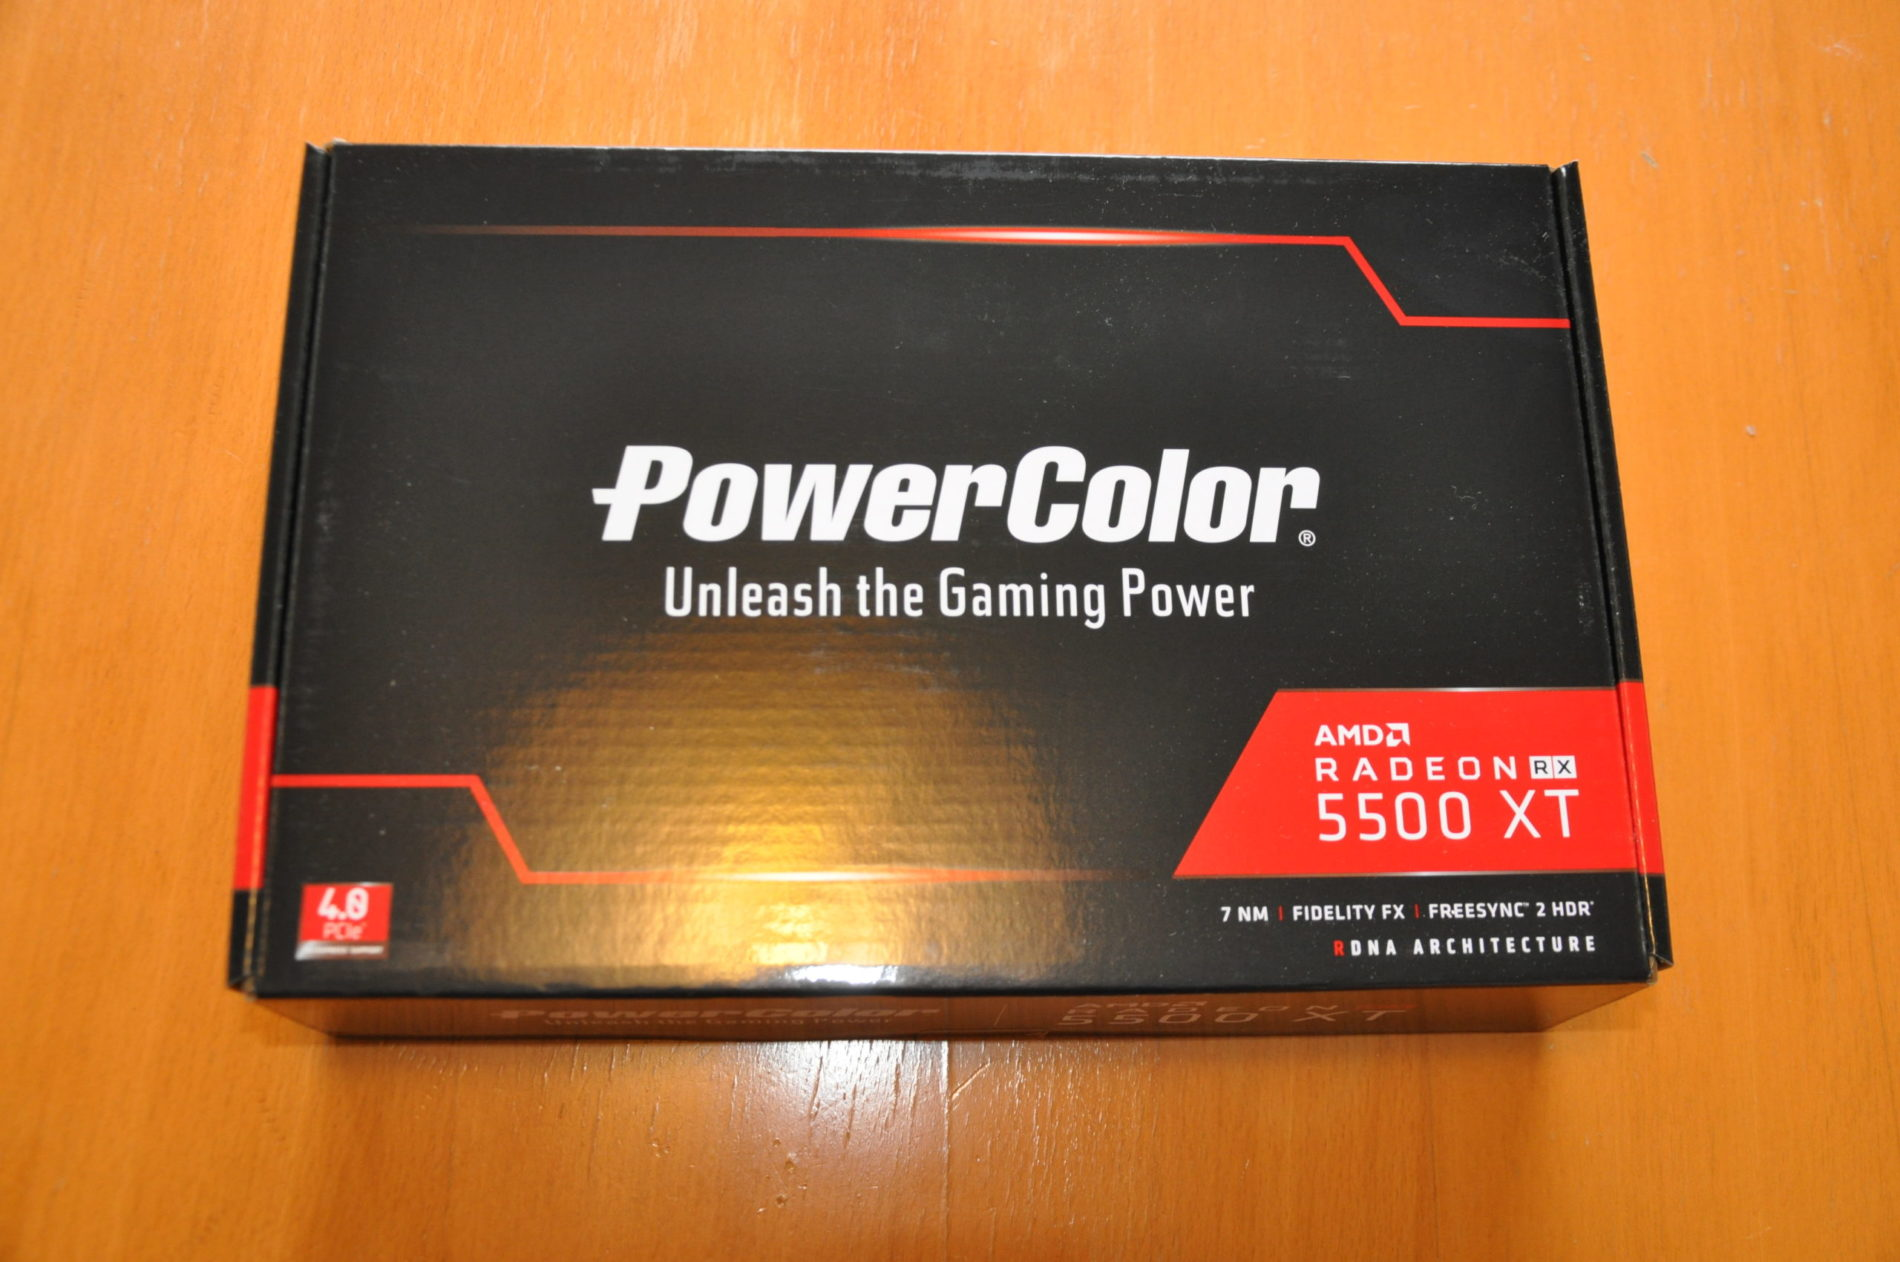 AMD Powercolor Radeon 5500XT 4GB Graphics card package.